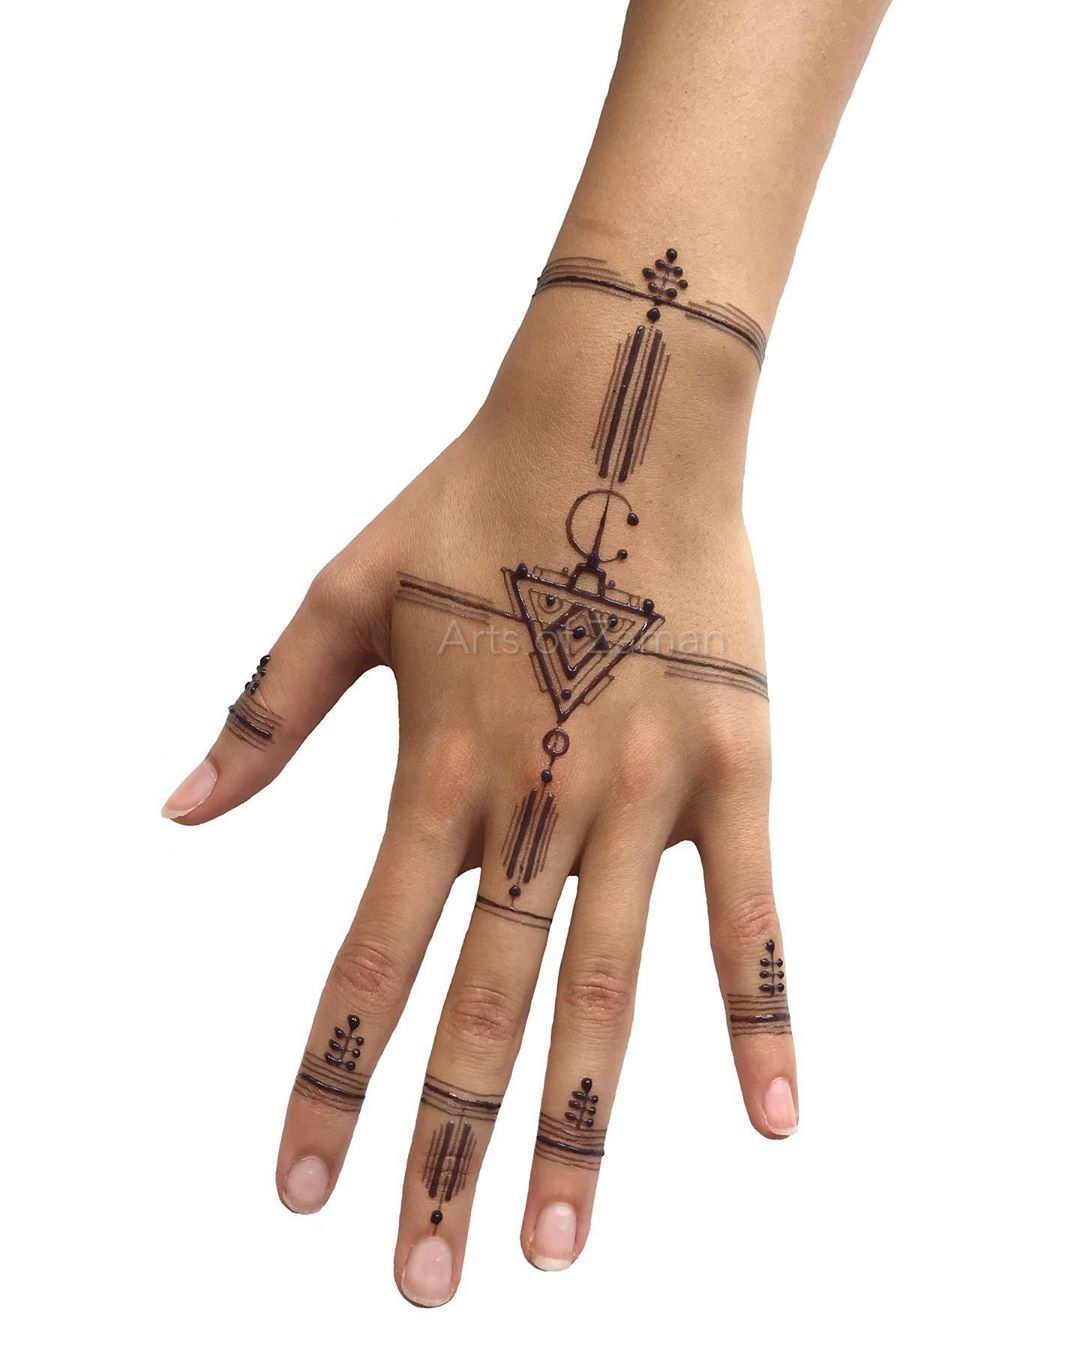 18+ Stunning How to draw tattoos on skin image HD